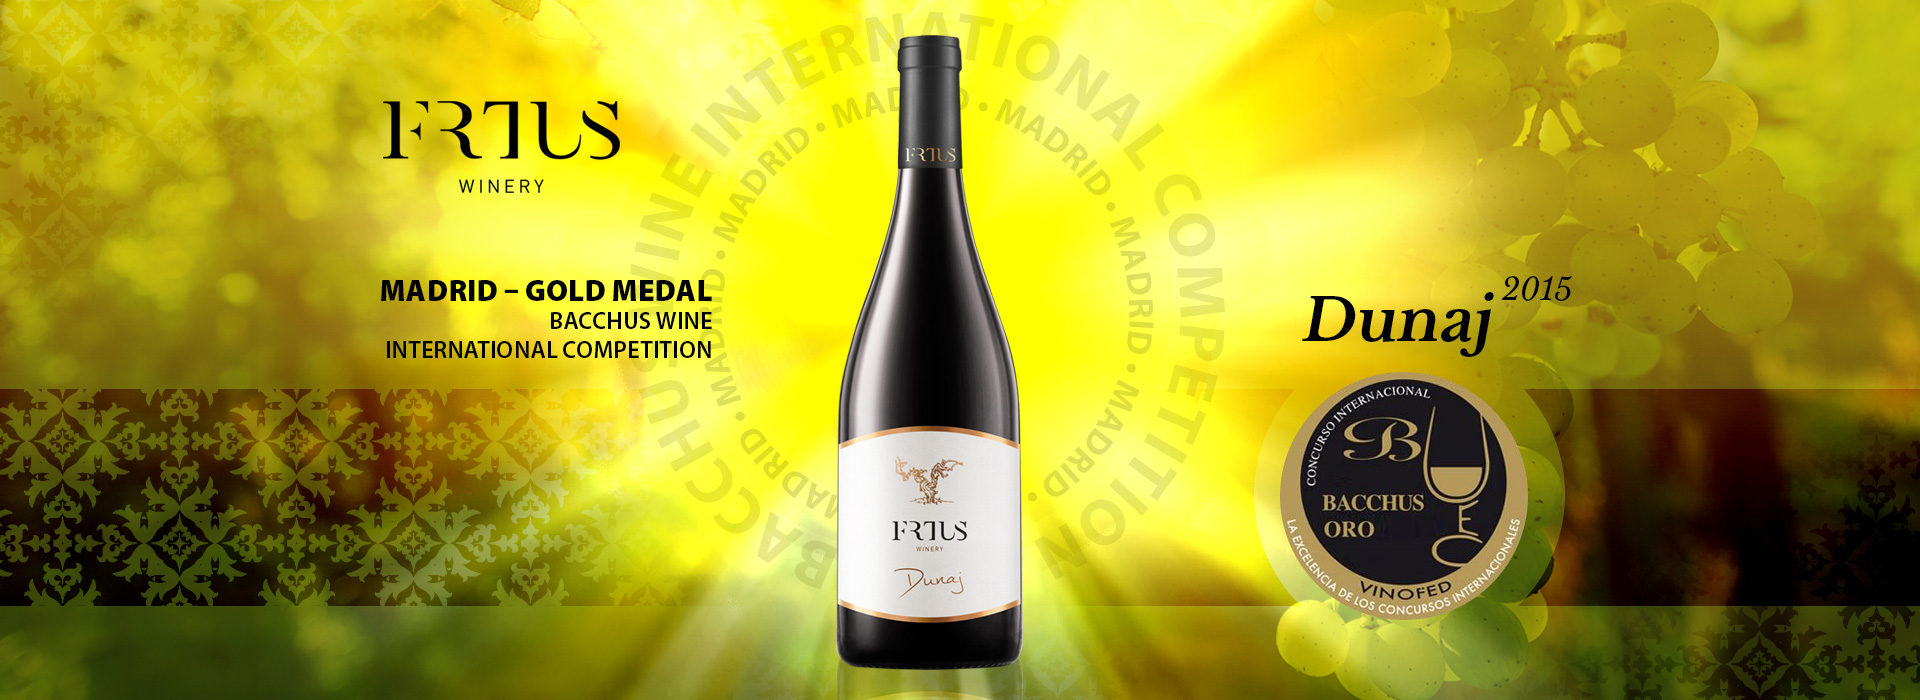 Dunaj 2015 - Madrid gold medal - Bacchus wine international competition